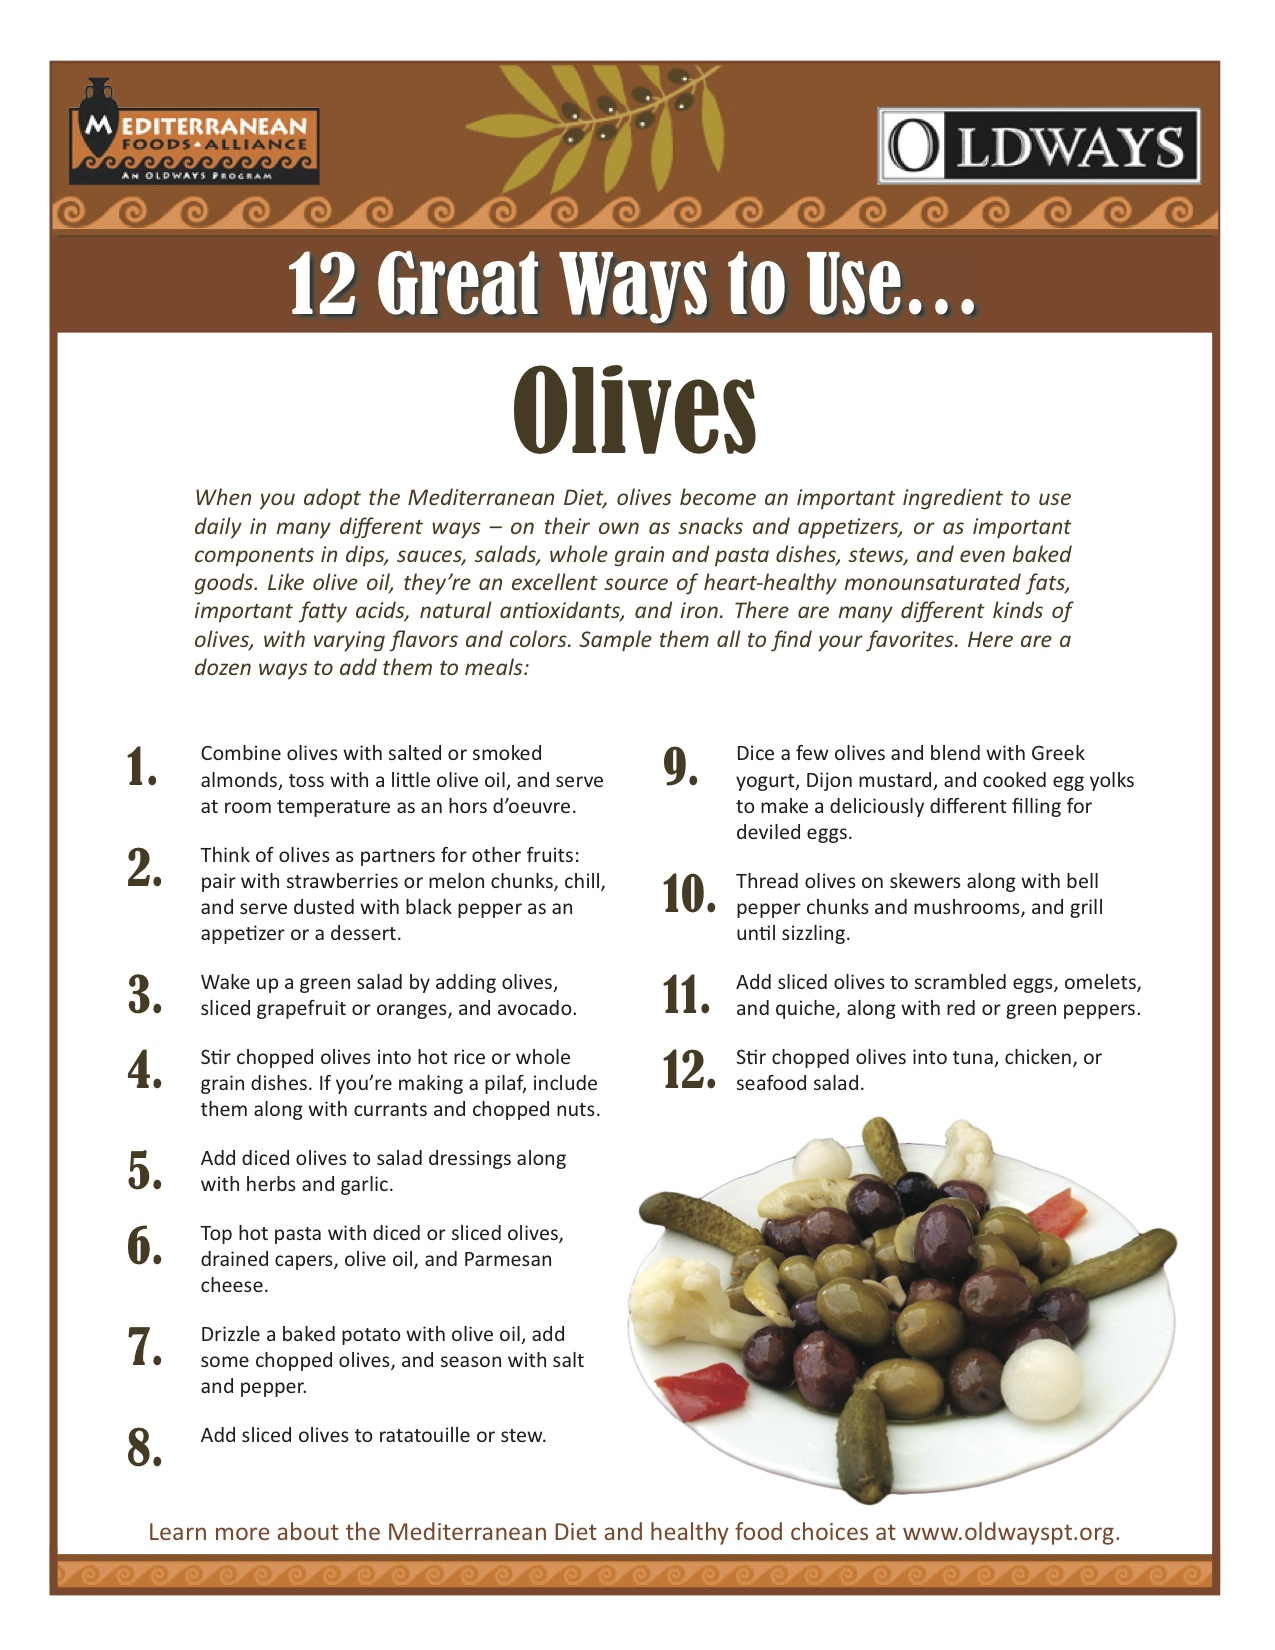 List of things you can do with olives